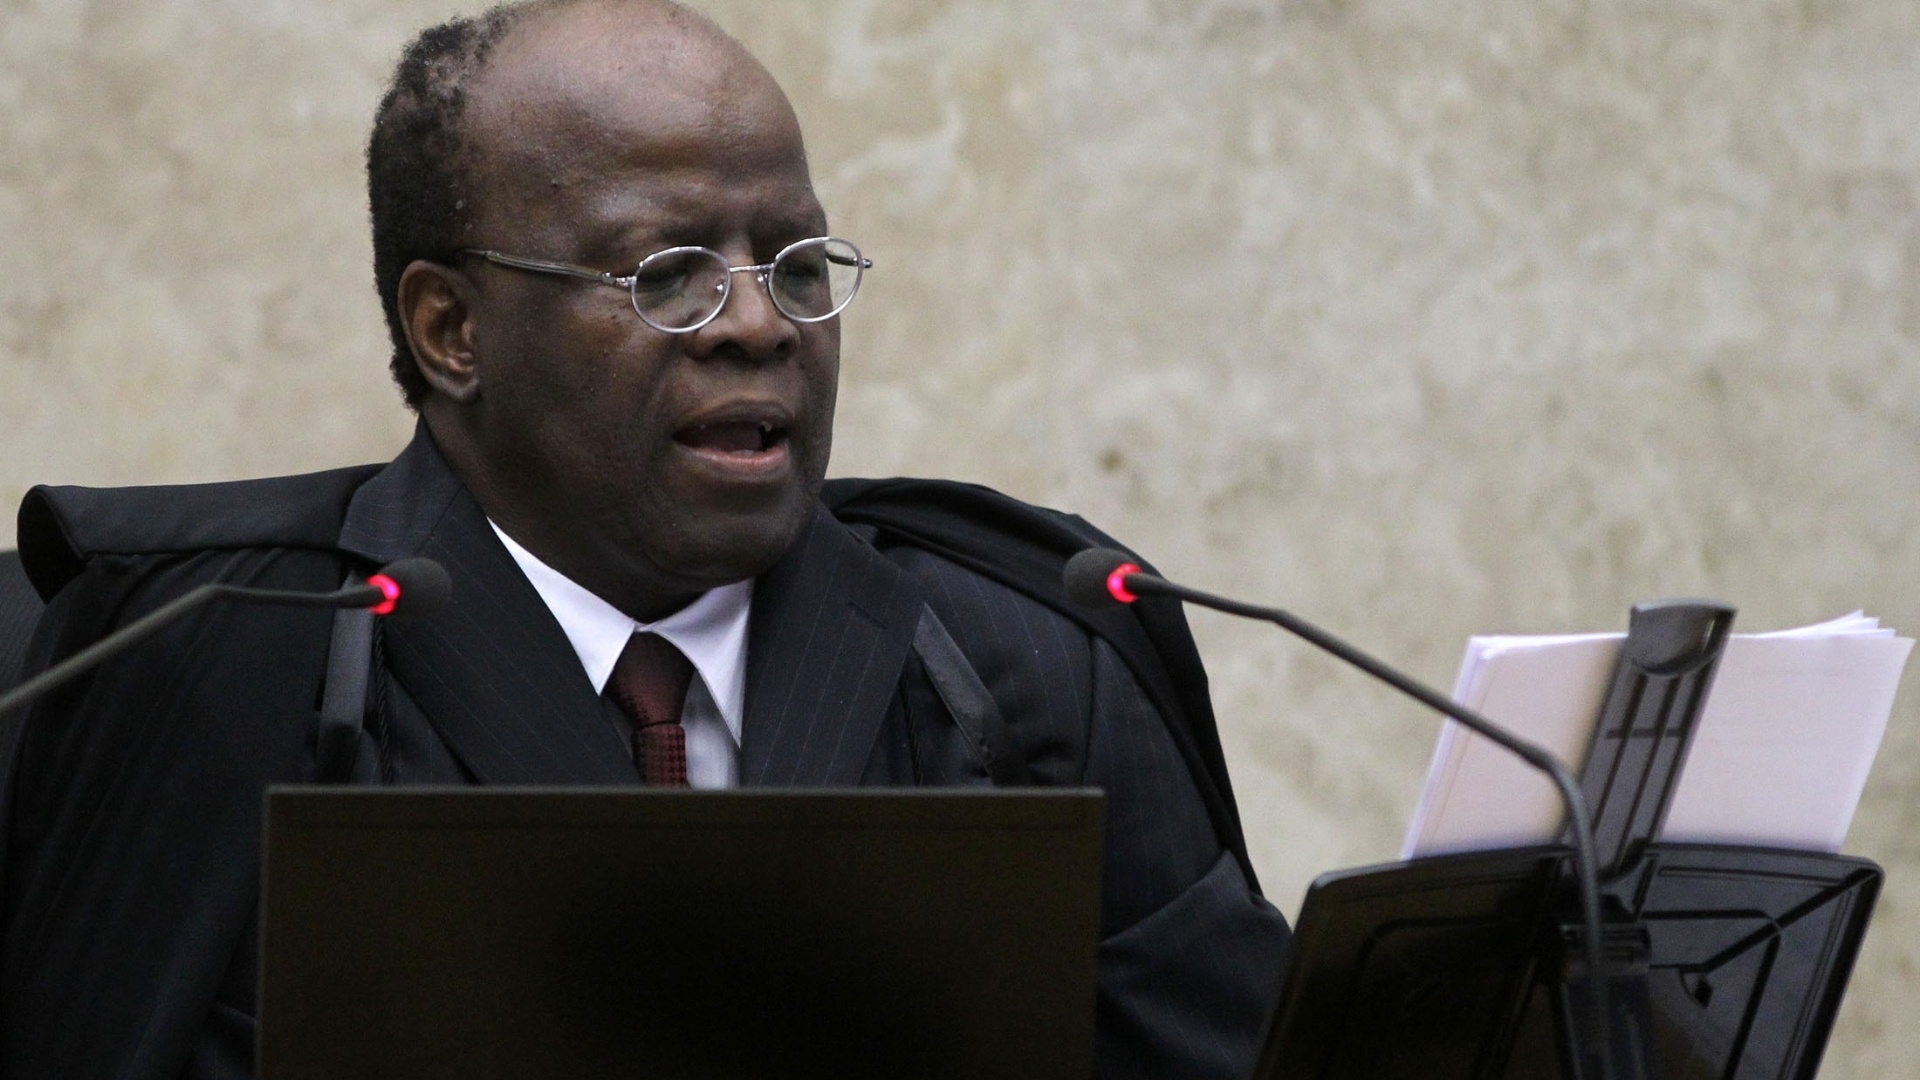 28.nov.2012 - Joaquim Barbosa, ministro-relator no processo do mensalo, durante sesso do STF (Superior Tribunal Federal) que define as trs ltimas penas: as do deputado federal Joo Paulo Cunha (PT-SP),  do ex-deputado federal Roberto Jefferson (PTB-RJ) e do ex-tesoureiro informal do PTB Emerson Palmieri